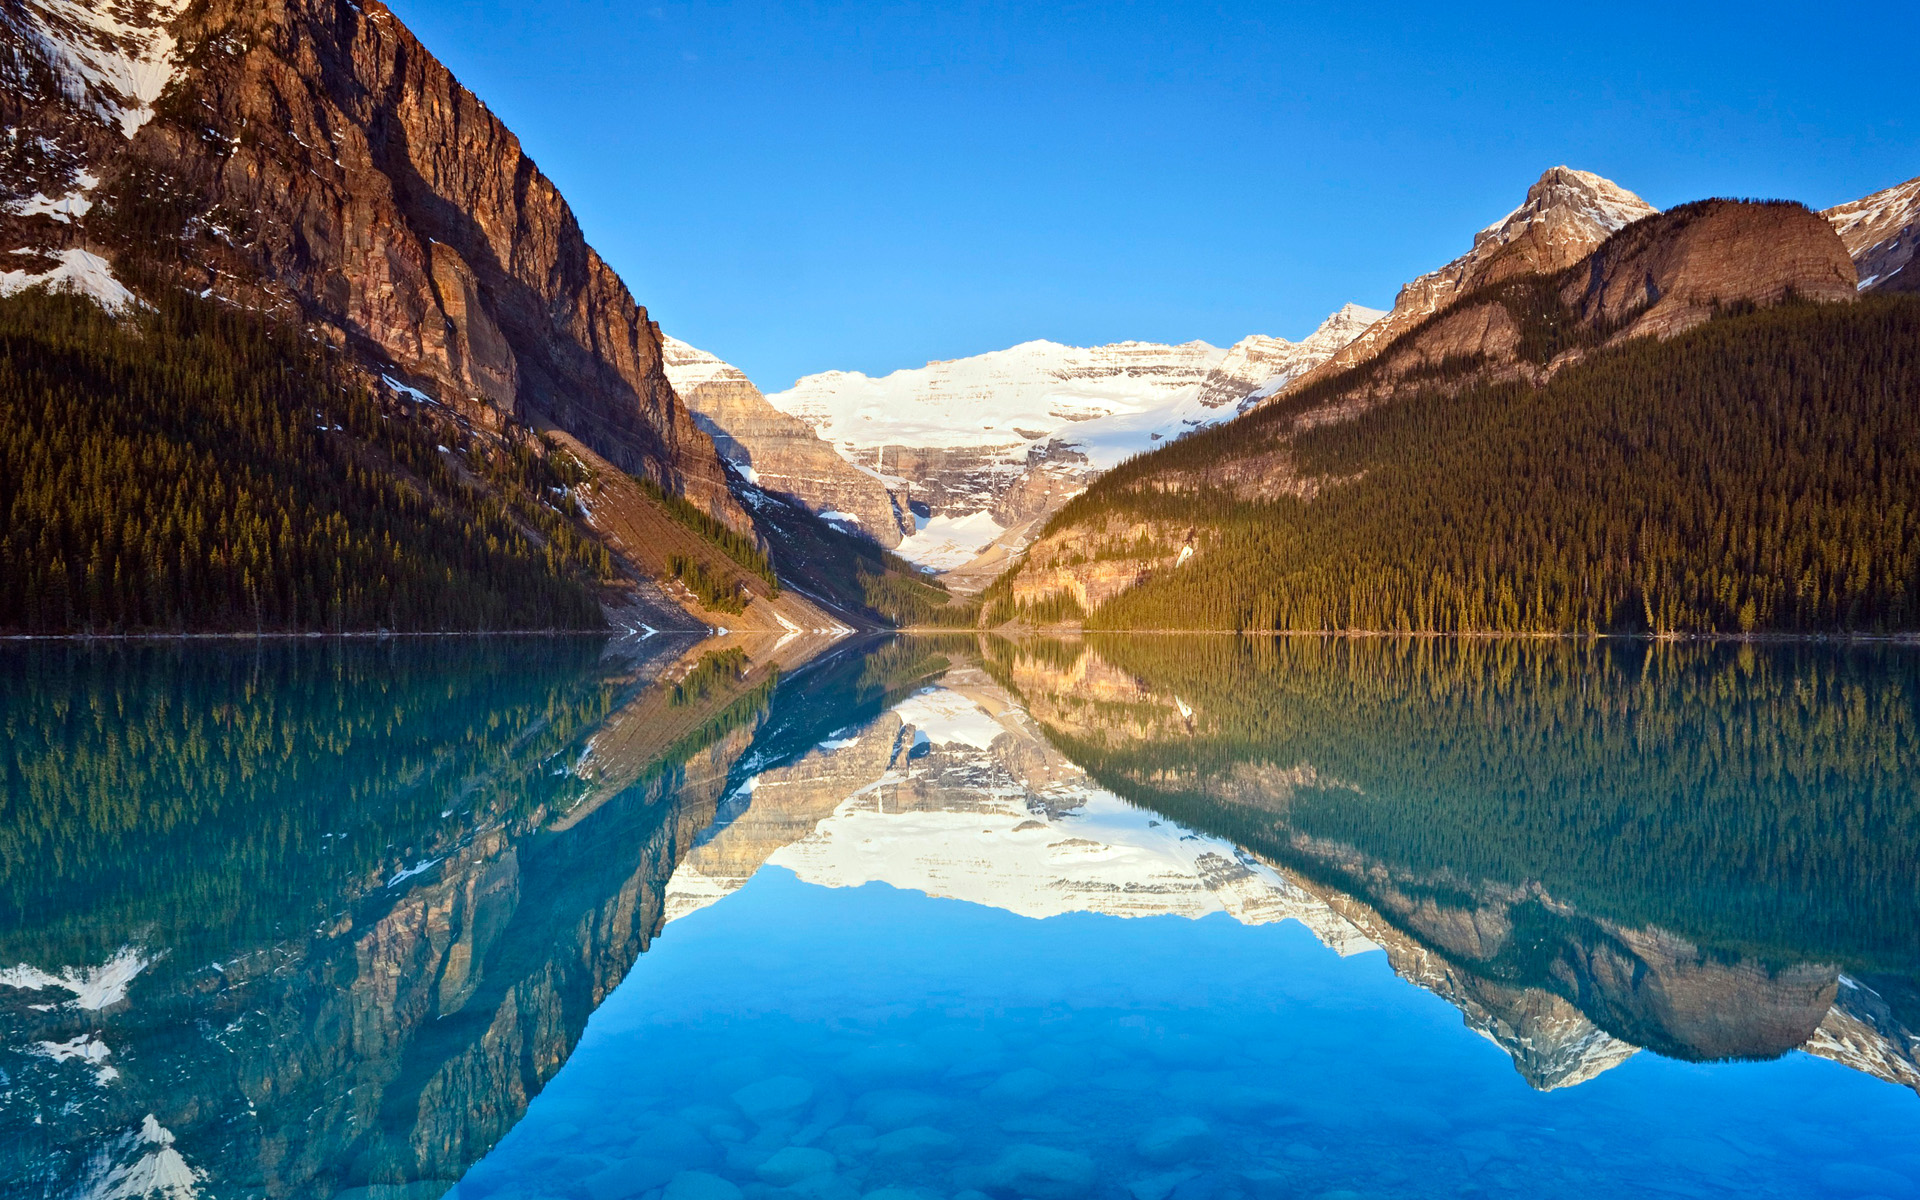 HD Wallpapers Lake Louise Reflections